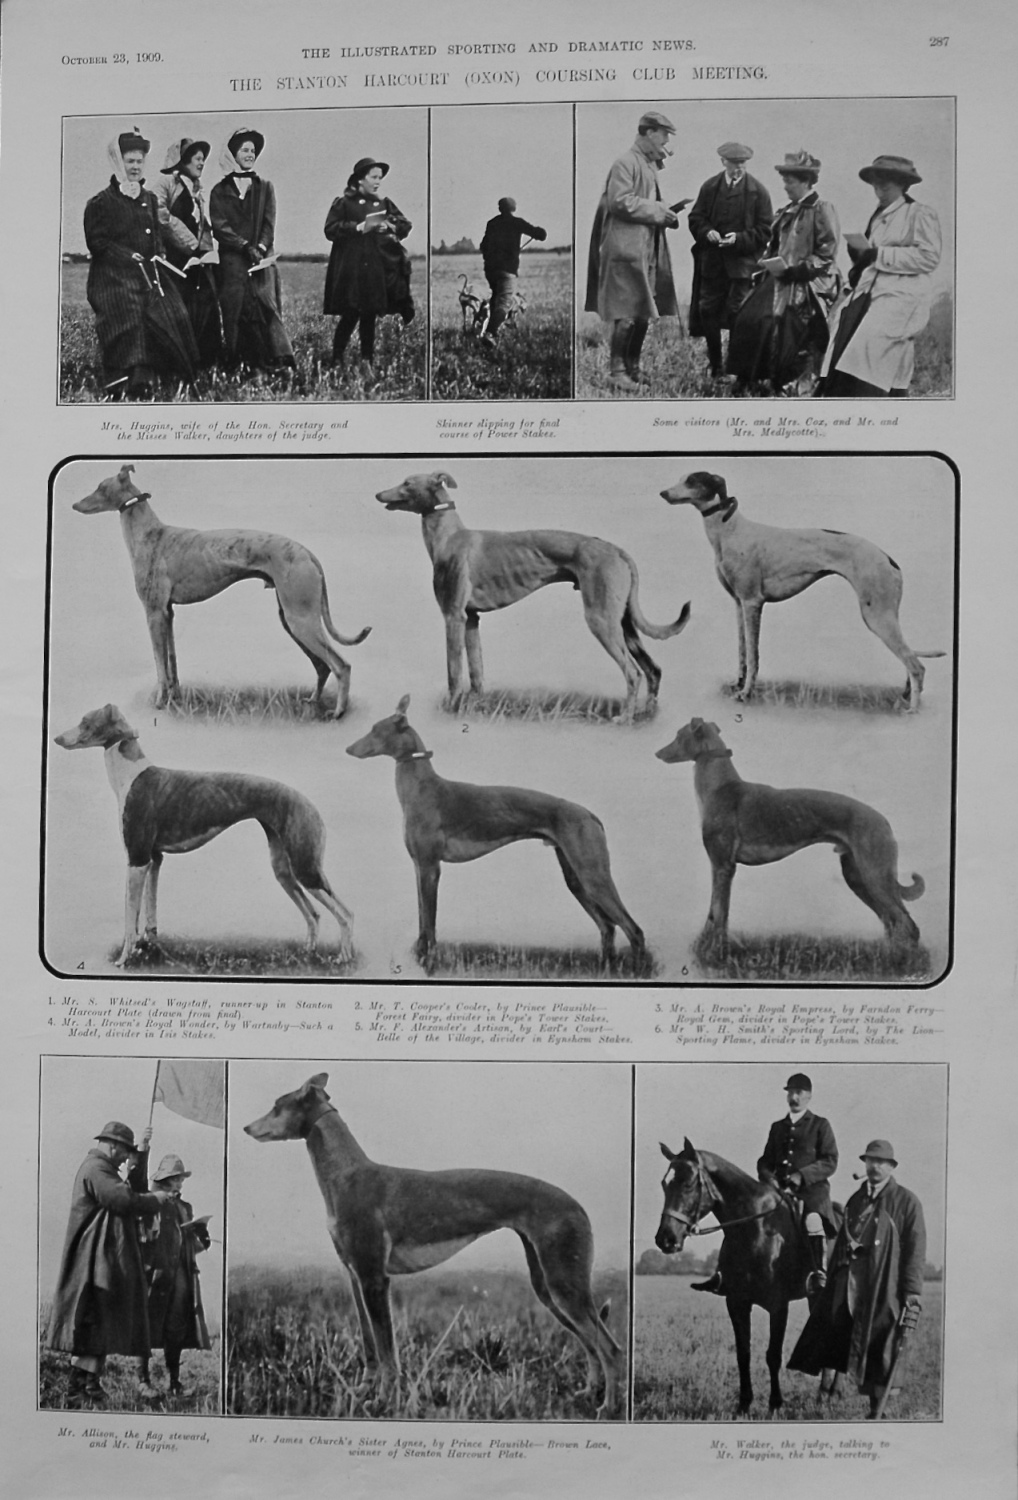 The Stanton Harcourt (Oxon) Coursing Club Meeting. 1909